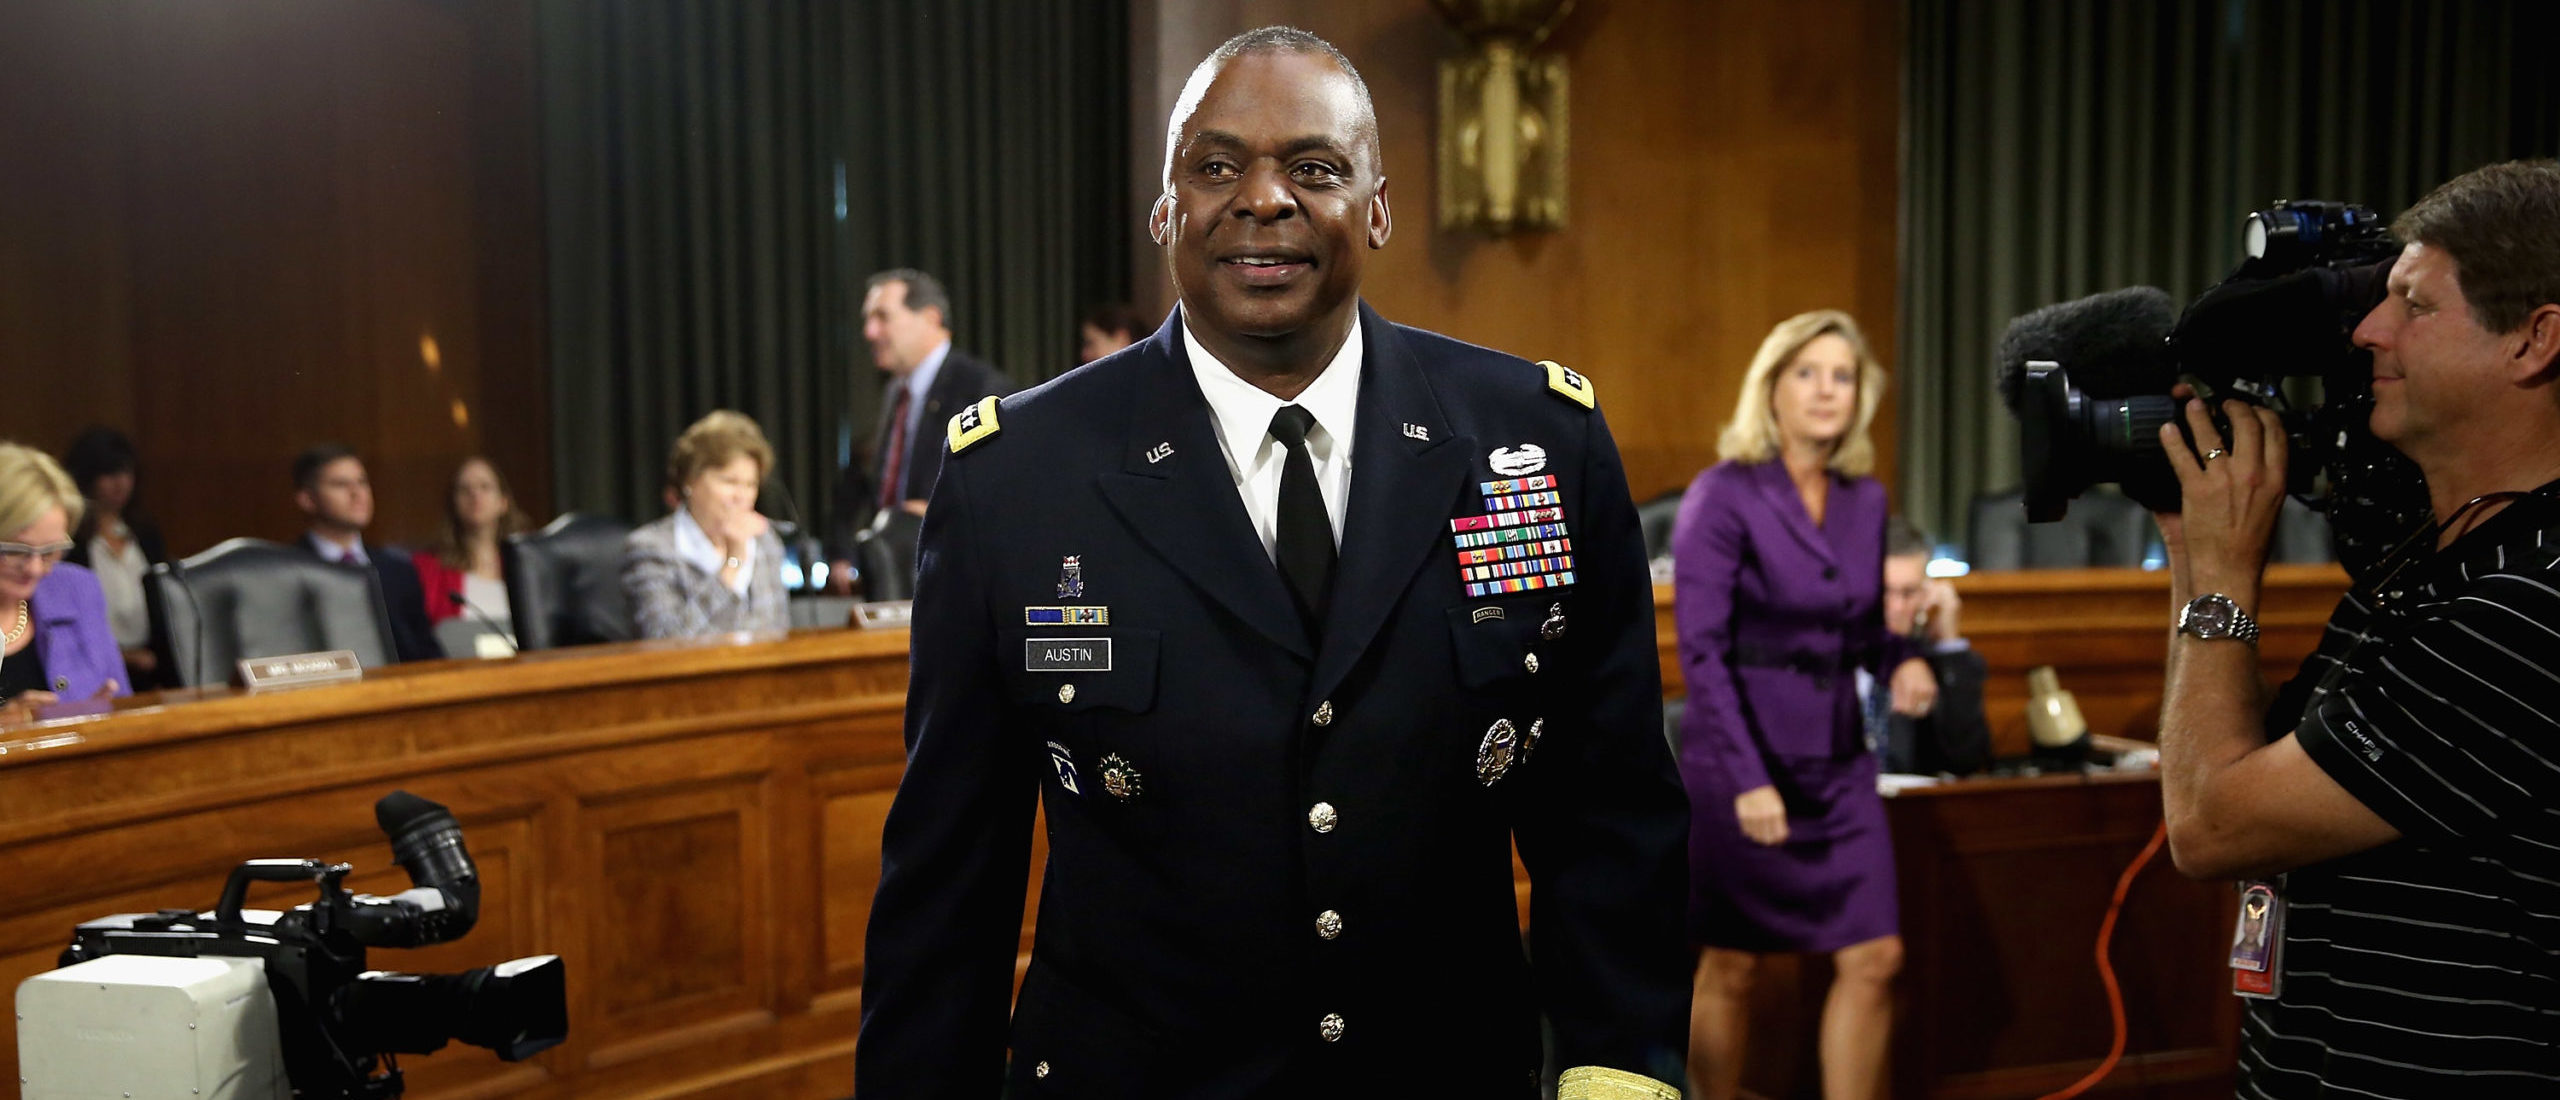 Gen. Lloyd Austin III, commander of U.S. Central Command, prepares to testify before the Senate Armed Services Committee about the ongoing U.S. military operations to counter the Islamic State in Iraq and the Levant (ISIL) during a hearing in the Dirksen Senate Office Building on Capitol Hill September 16, 2015 in Washington, DC. (Chip Somodevilla/Getty Images)